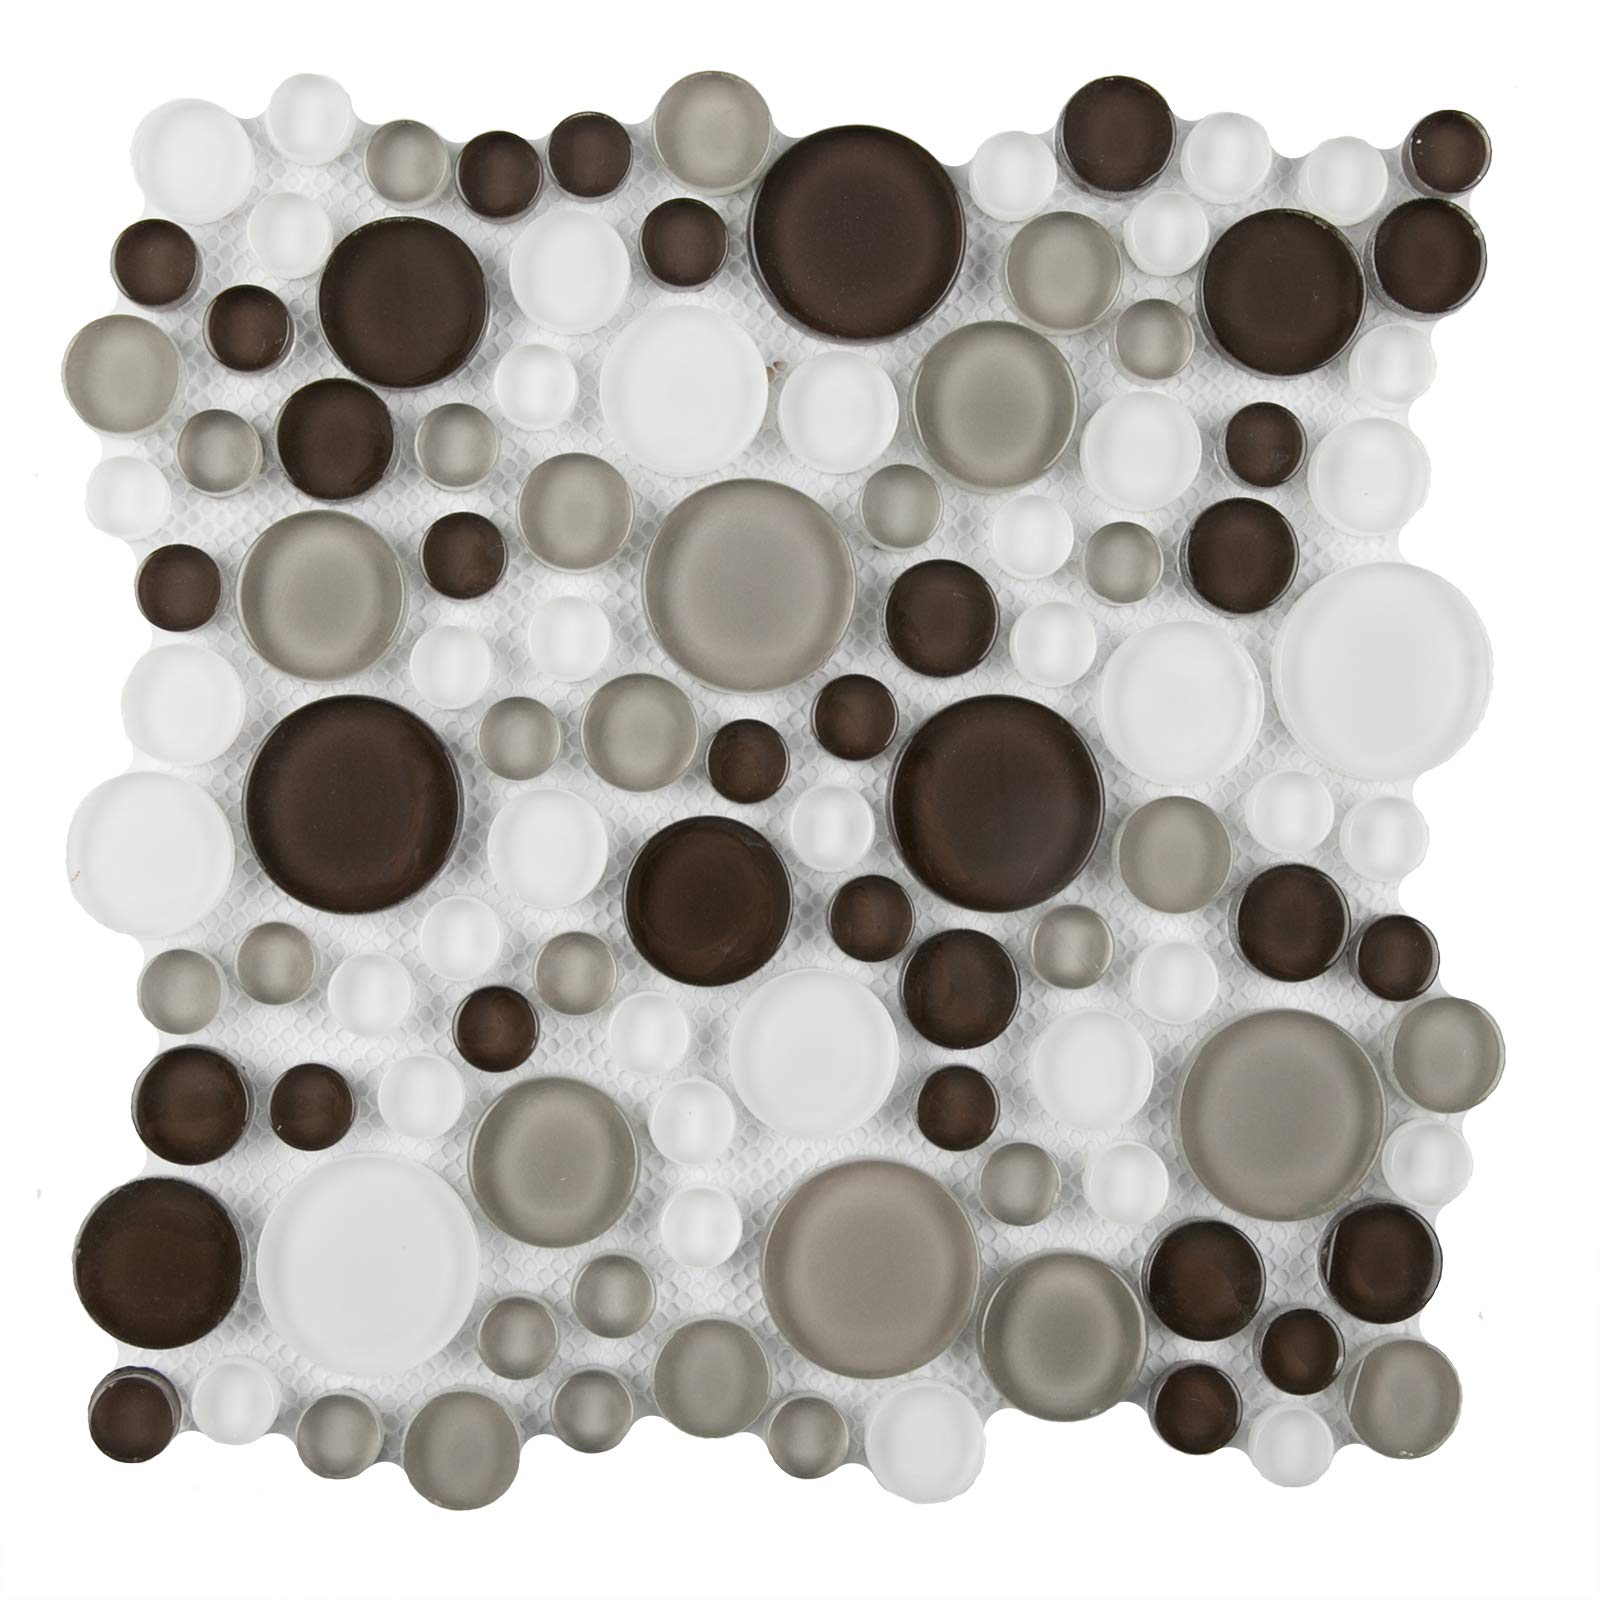 Glass Mosaic Tile,''Bubble Collection'', GM 4102 - Tapioca, Mixed Rounds, 11''X11'' (Box of 5 Sheets)